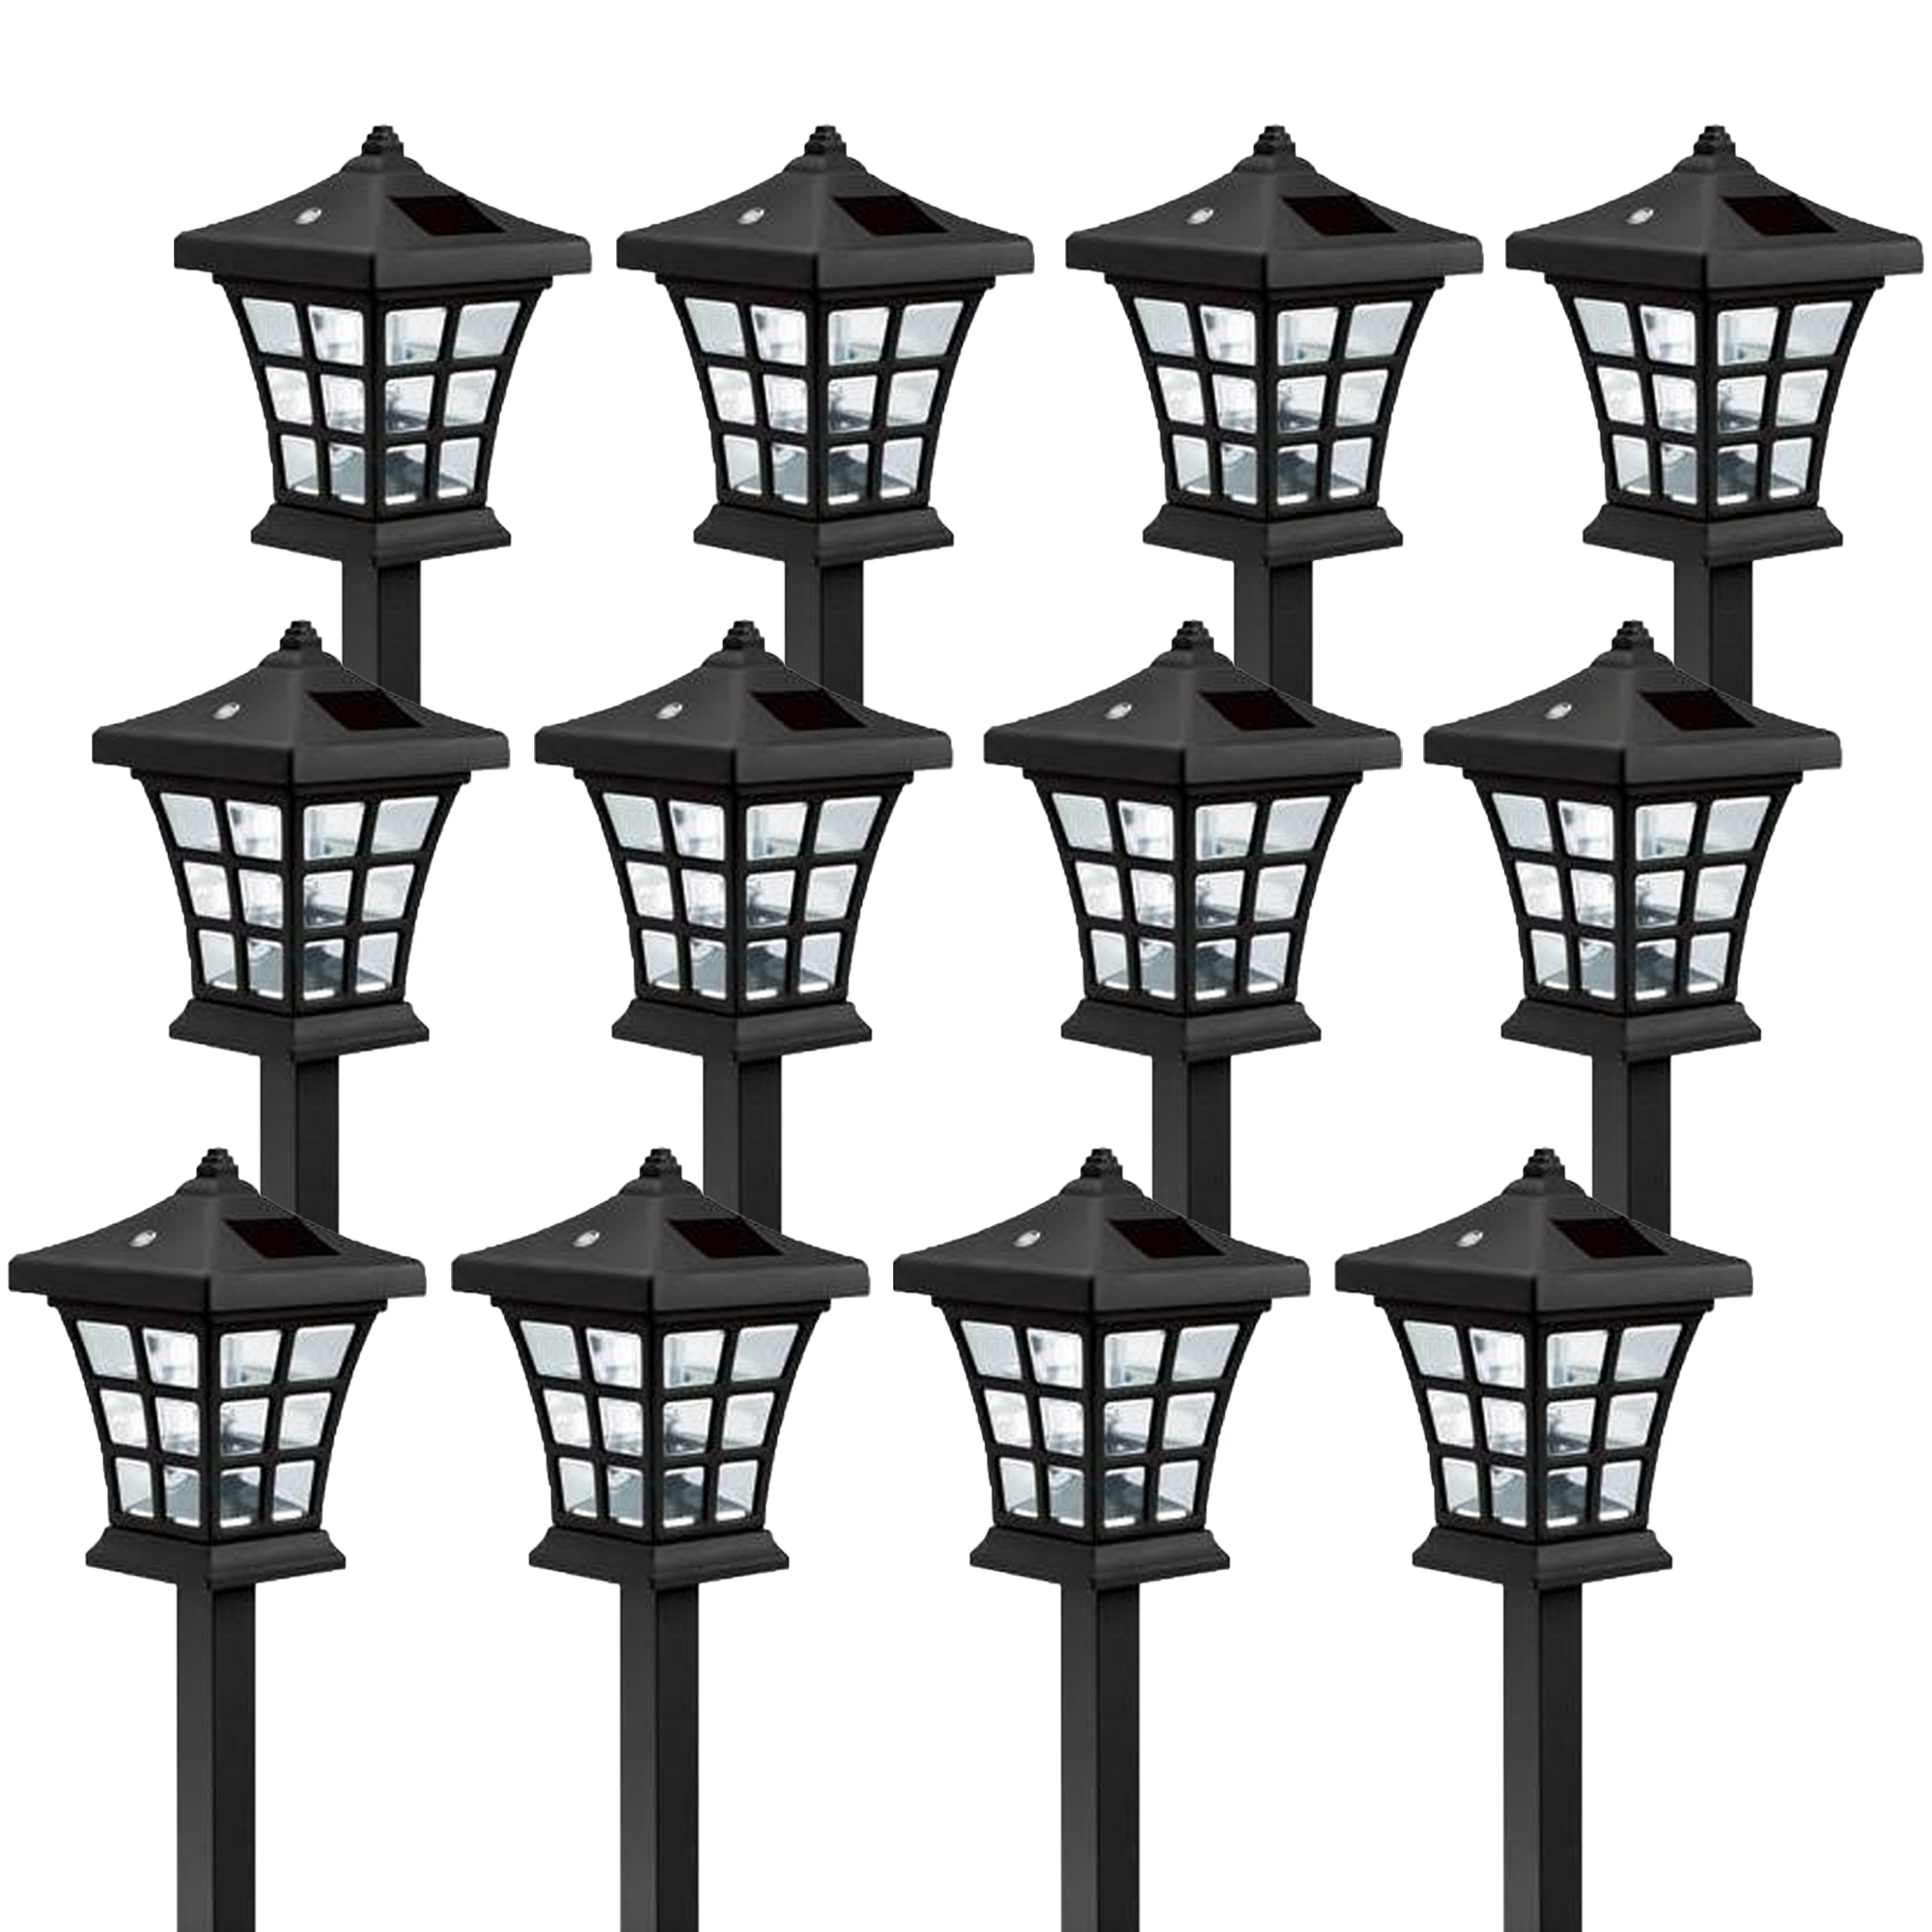 12 Pack Westinghouse Venture Black Solar Outdoor Garden